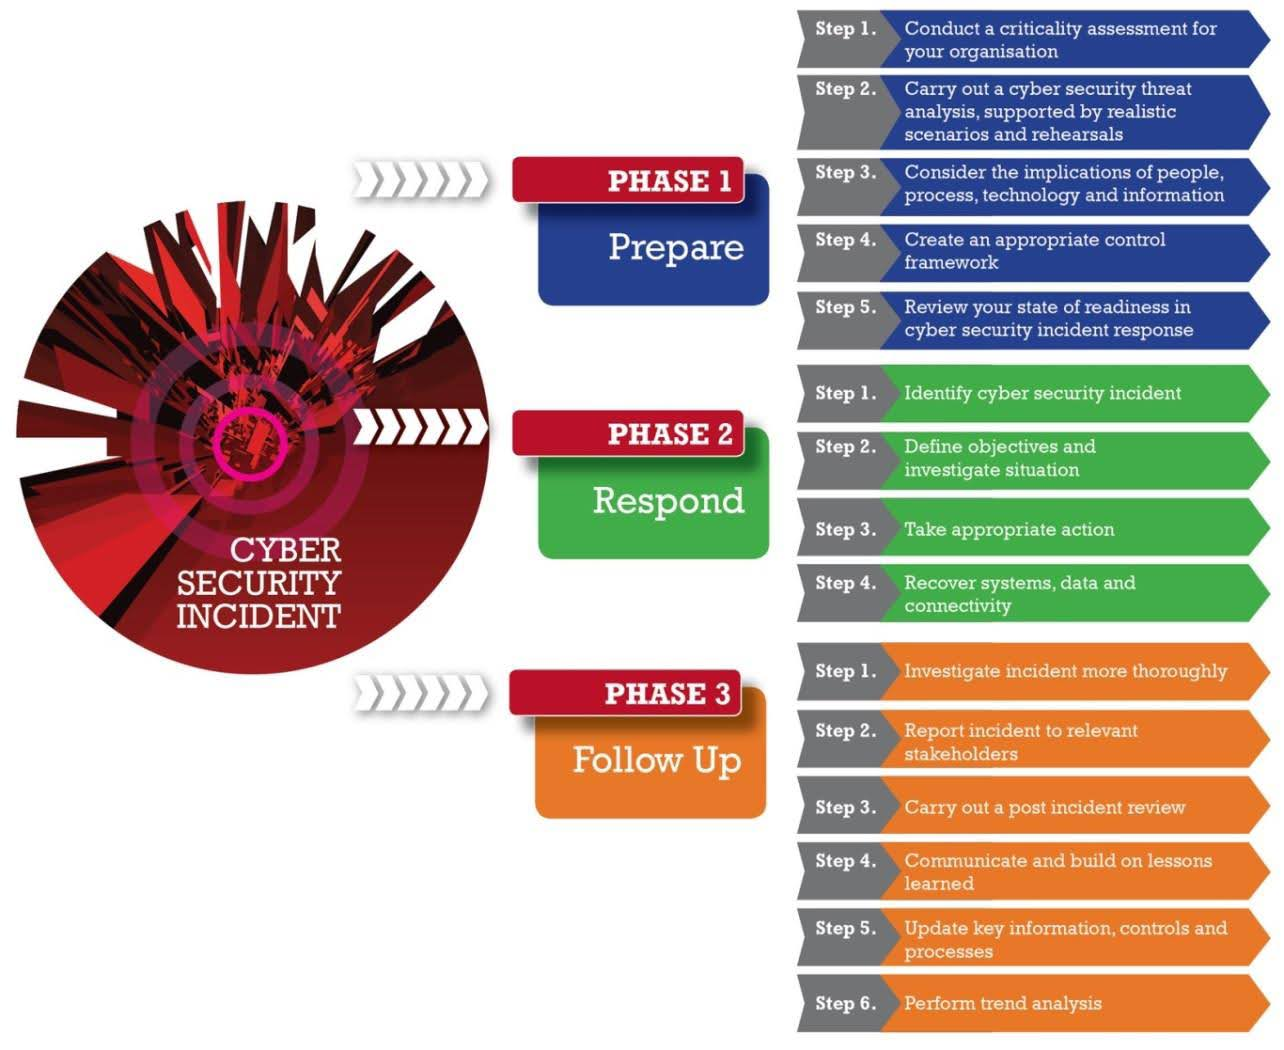 Cyber Security Incident response process